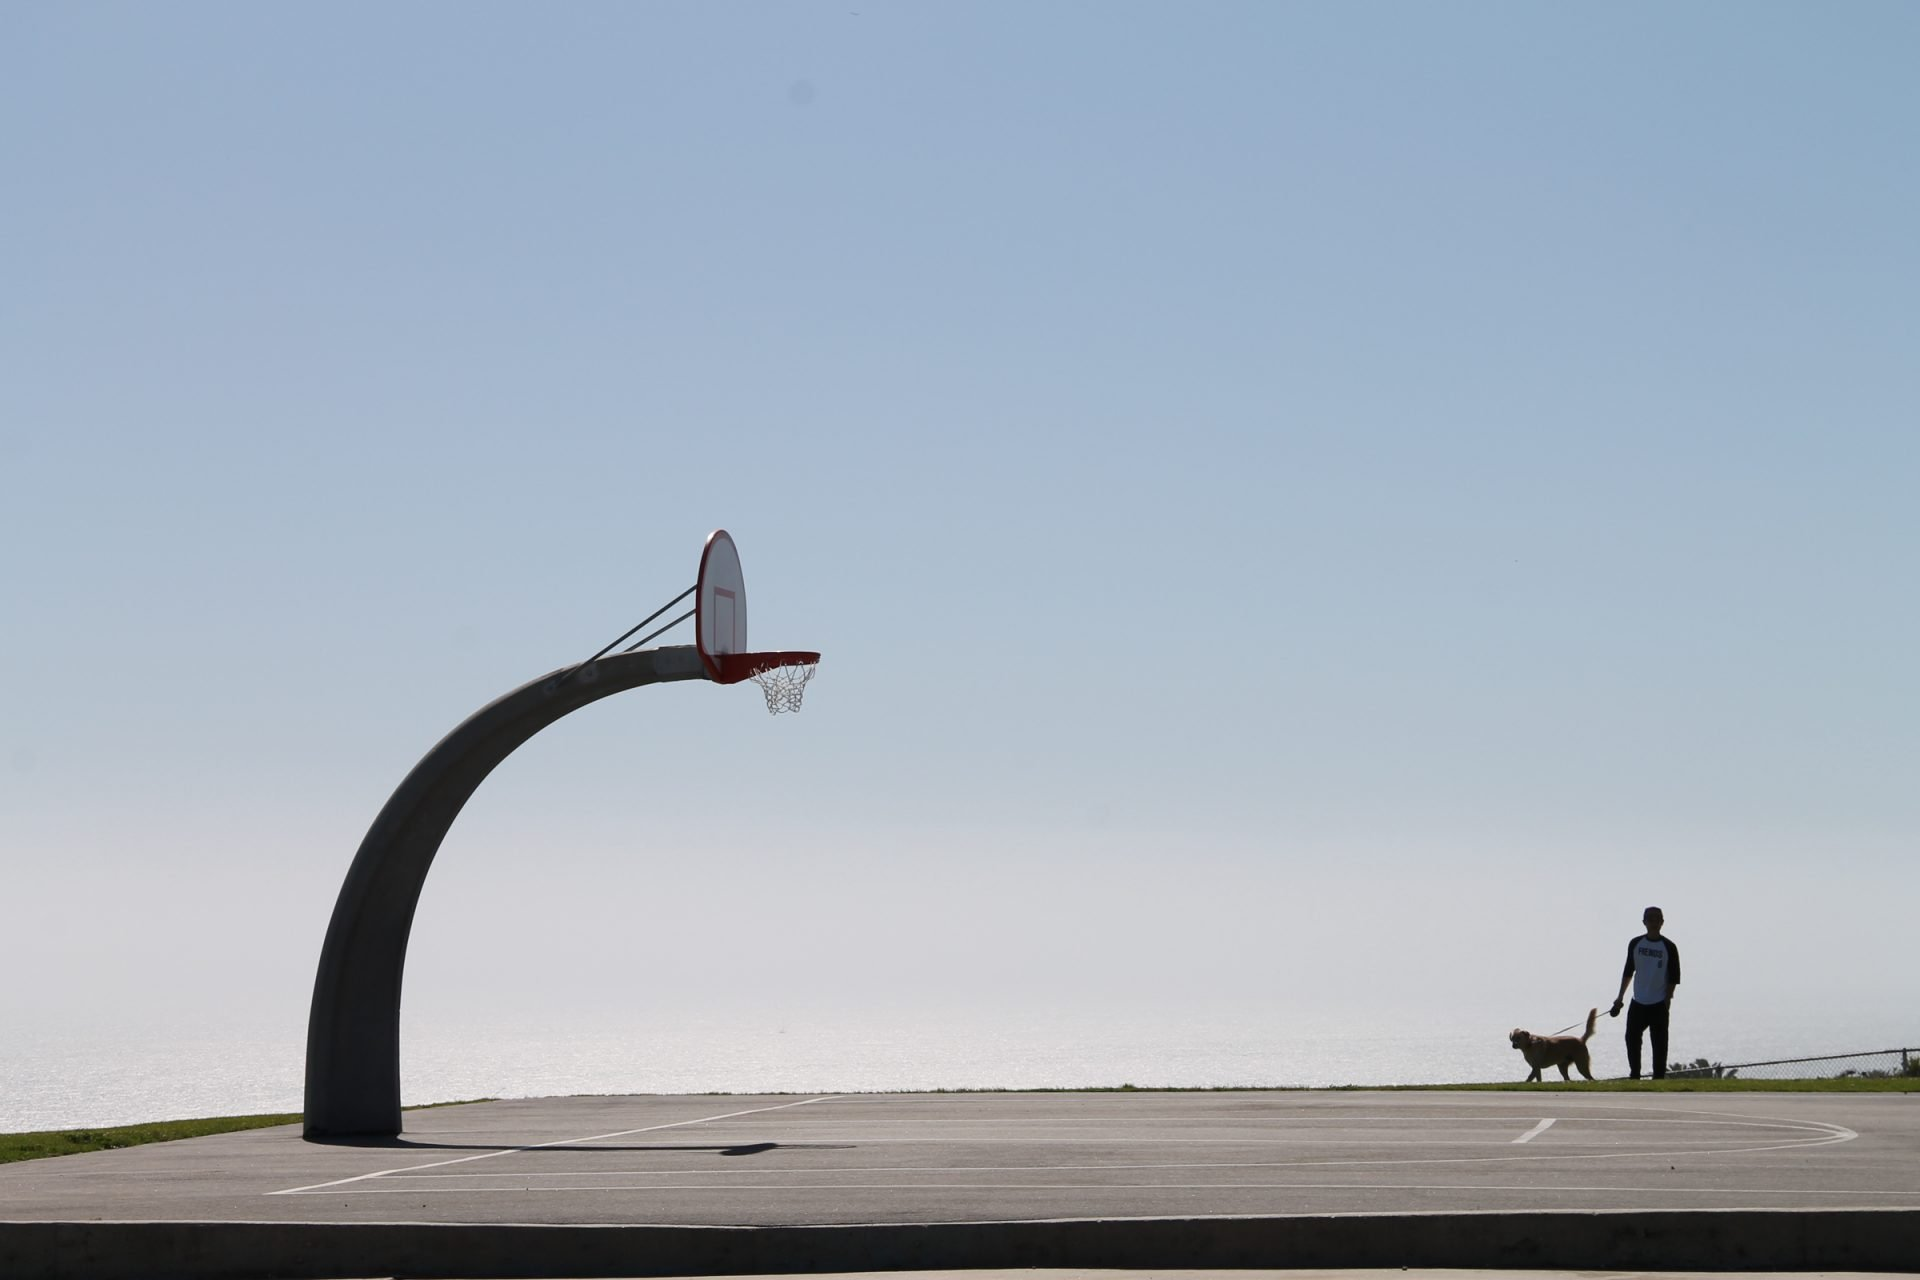 Curved Basketball Hoop & Man With Dog